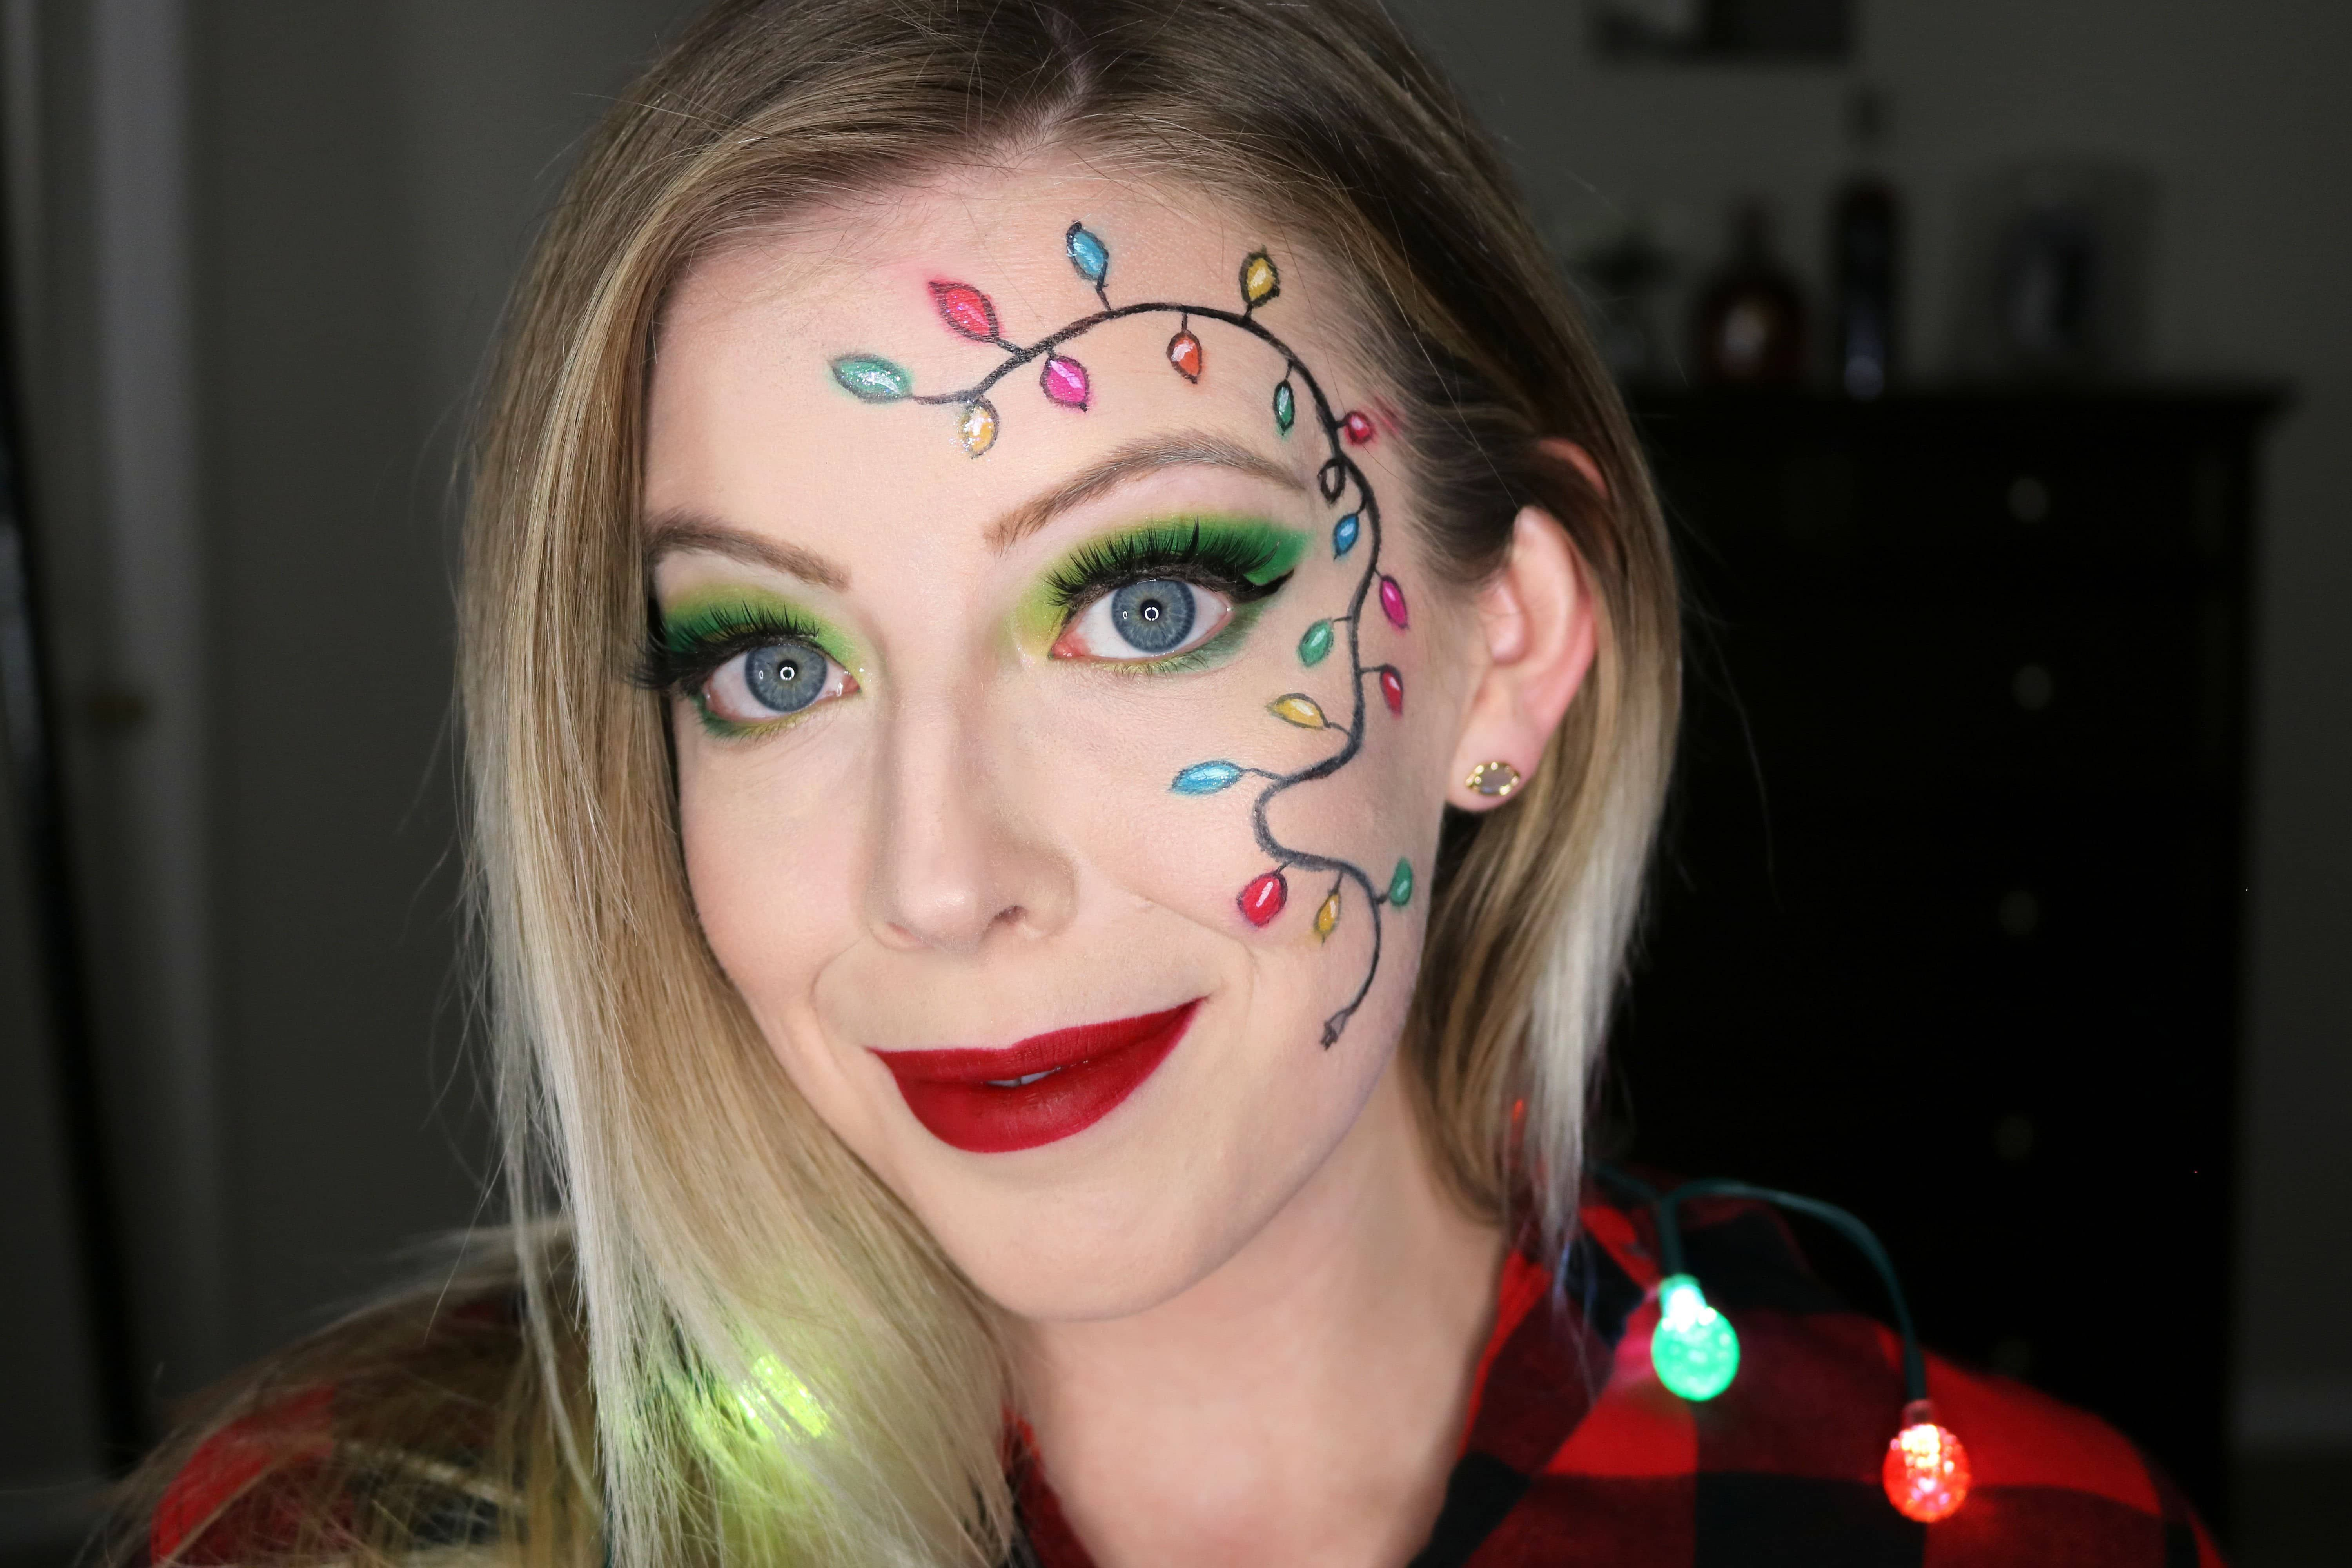 Festive String Lights Christmas Party Makeup - Kindly Unspoken - #christmas #festive #kindly #lights #makeup #party #string #unspoken